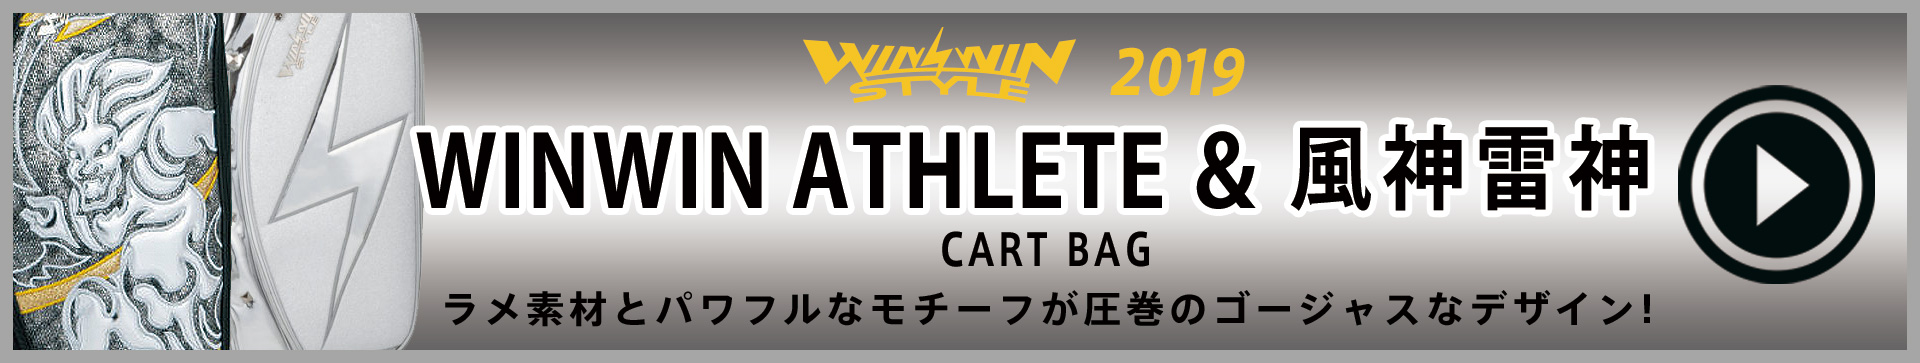 WINWIN ATHLETE & 風神雷神